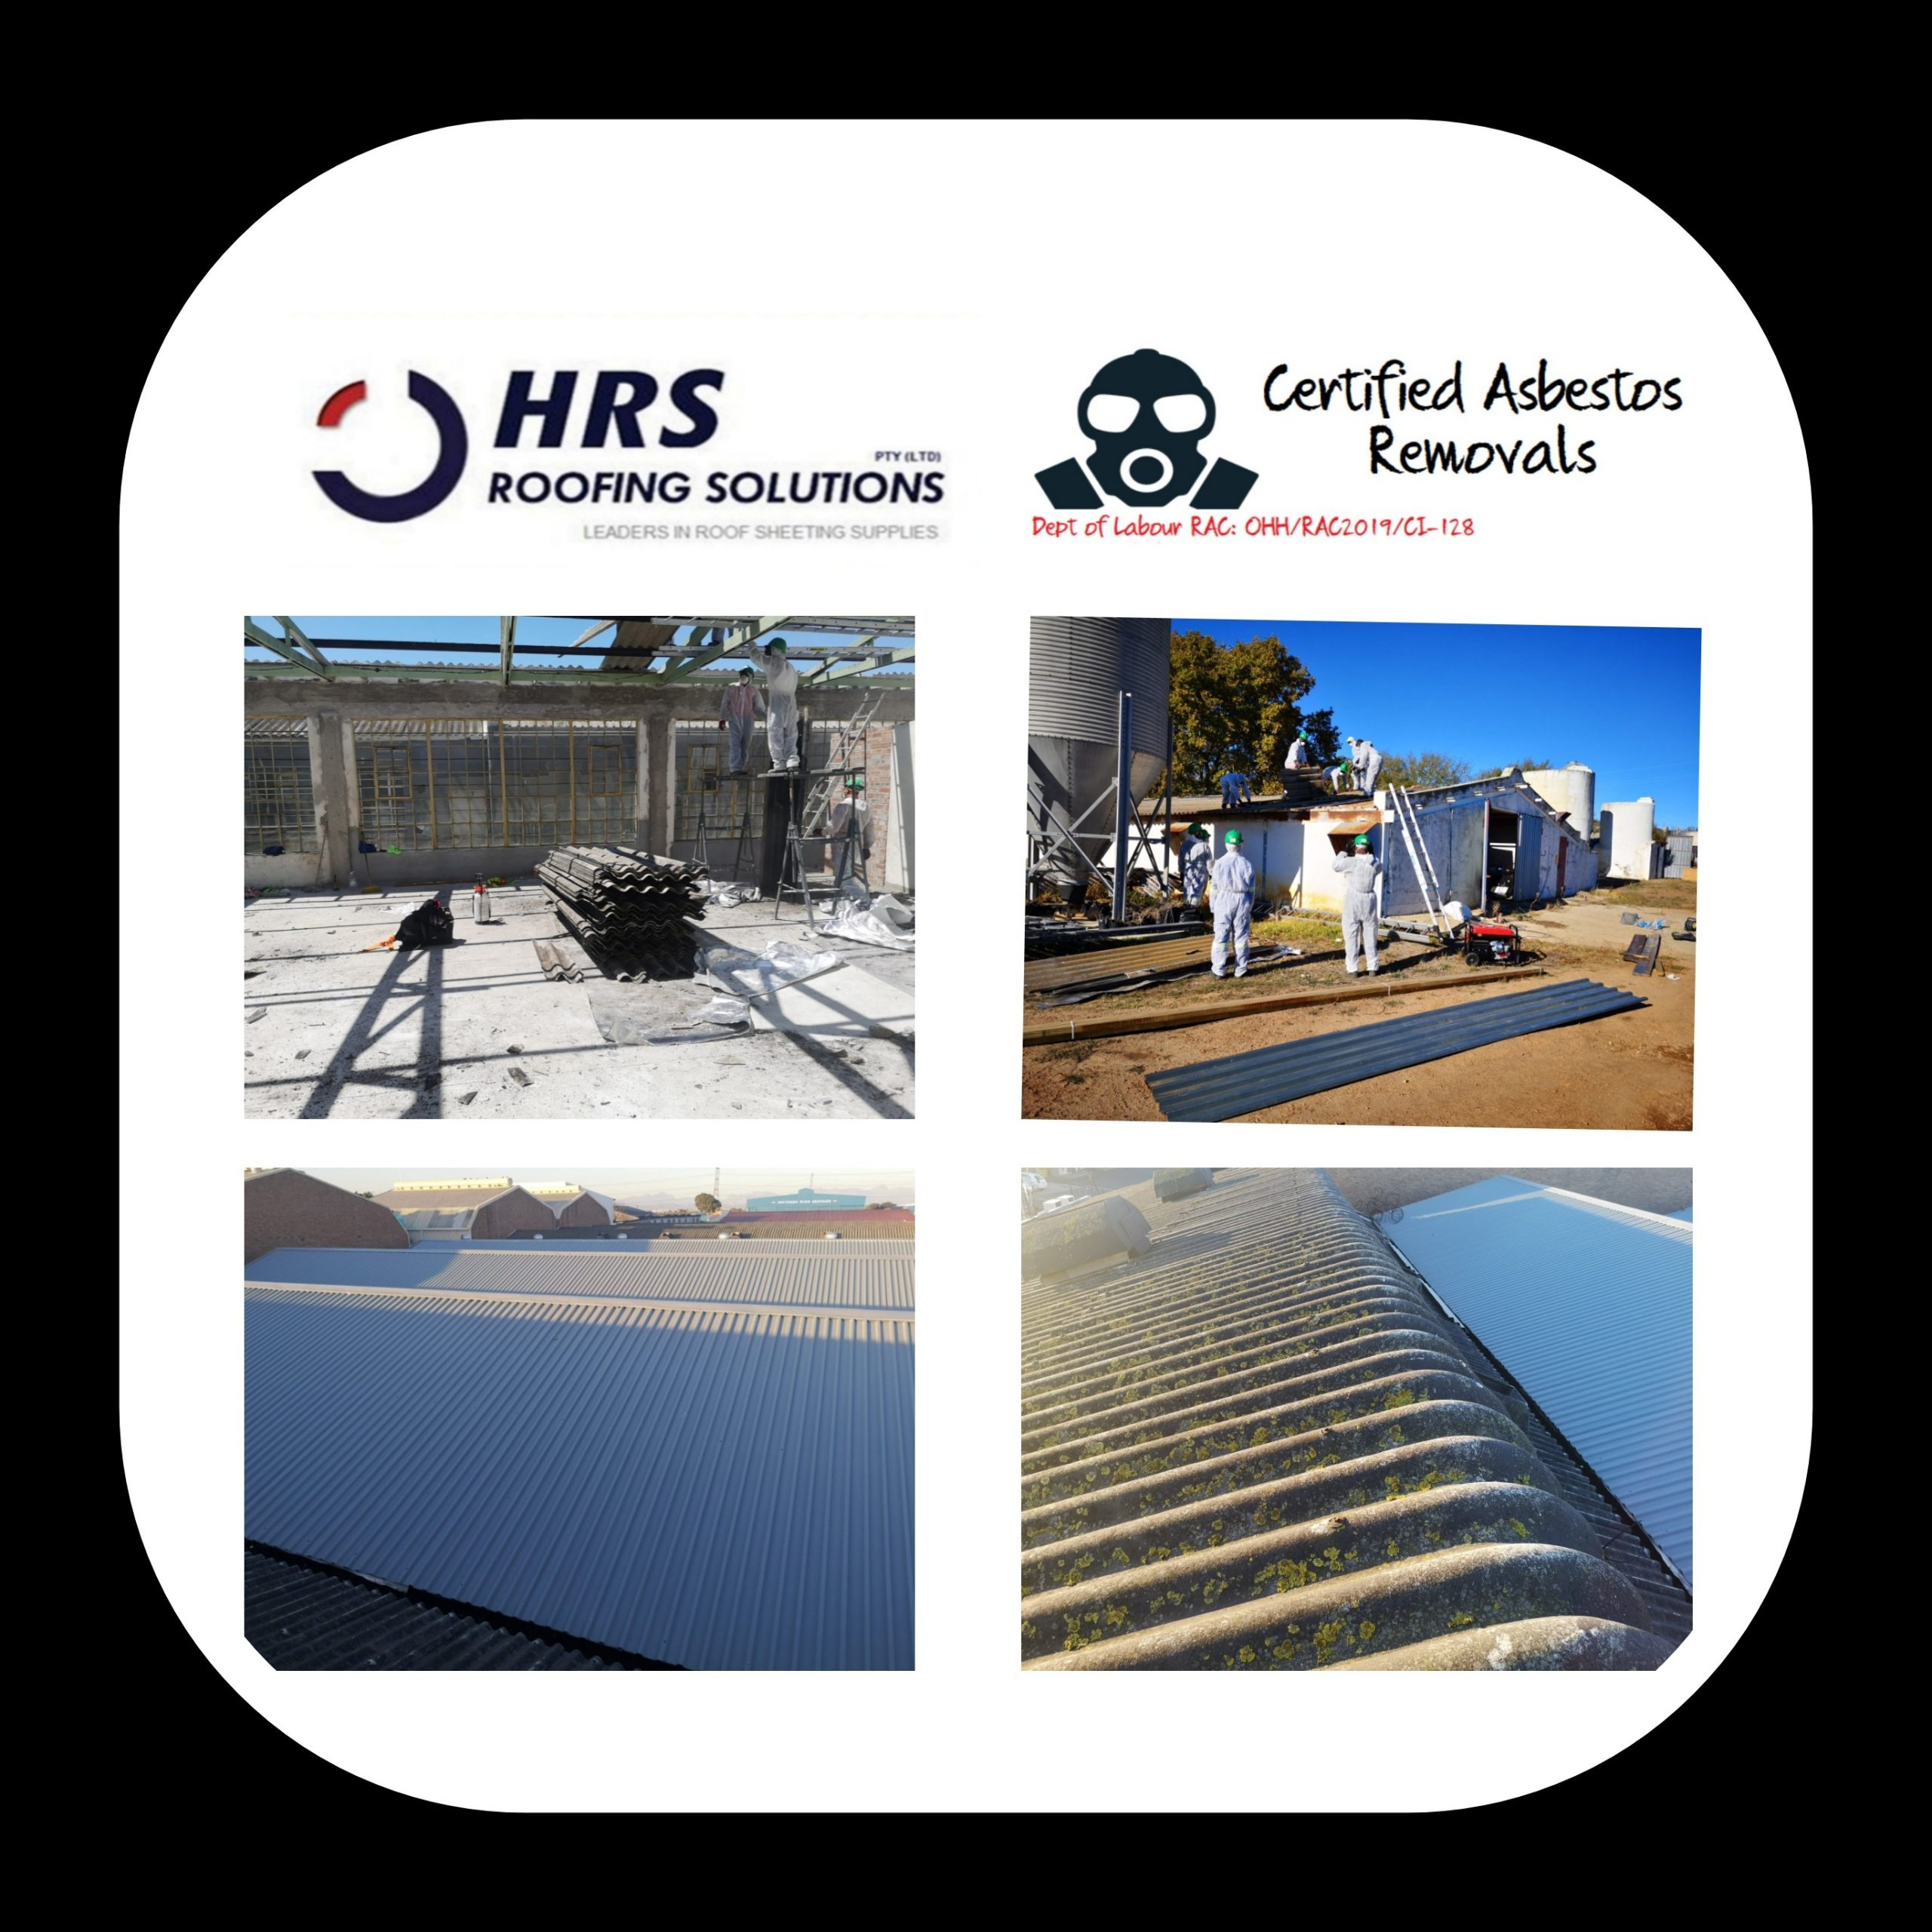 hrs roofing solutions roofing supplier cape Town Colorbond scaled - Roofing Gallery